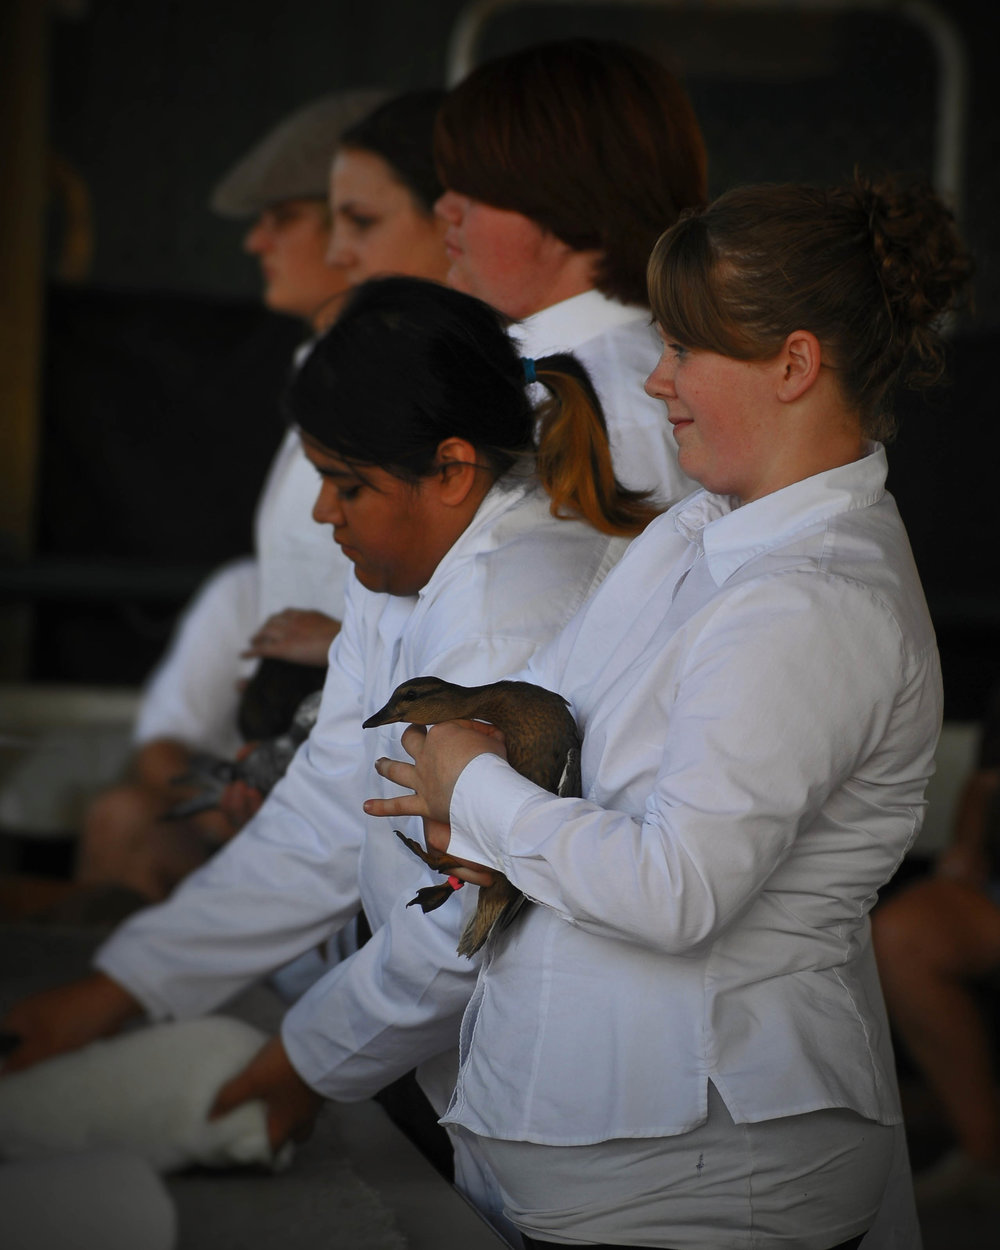 4H - pet showing, Snohomish County Fair, Wa